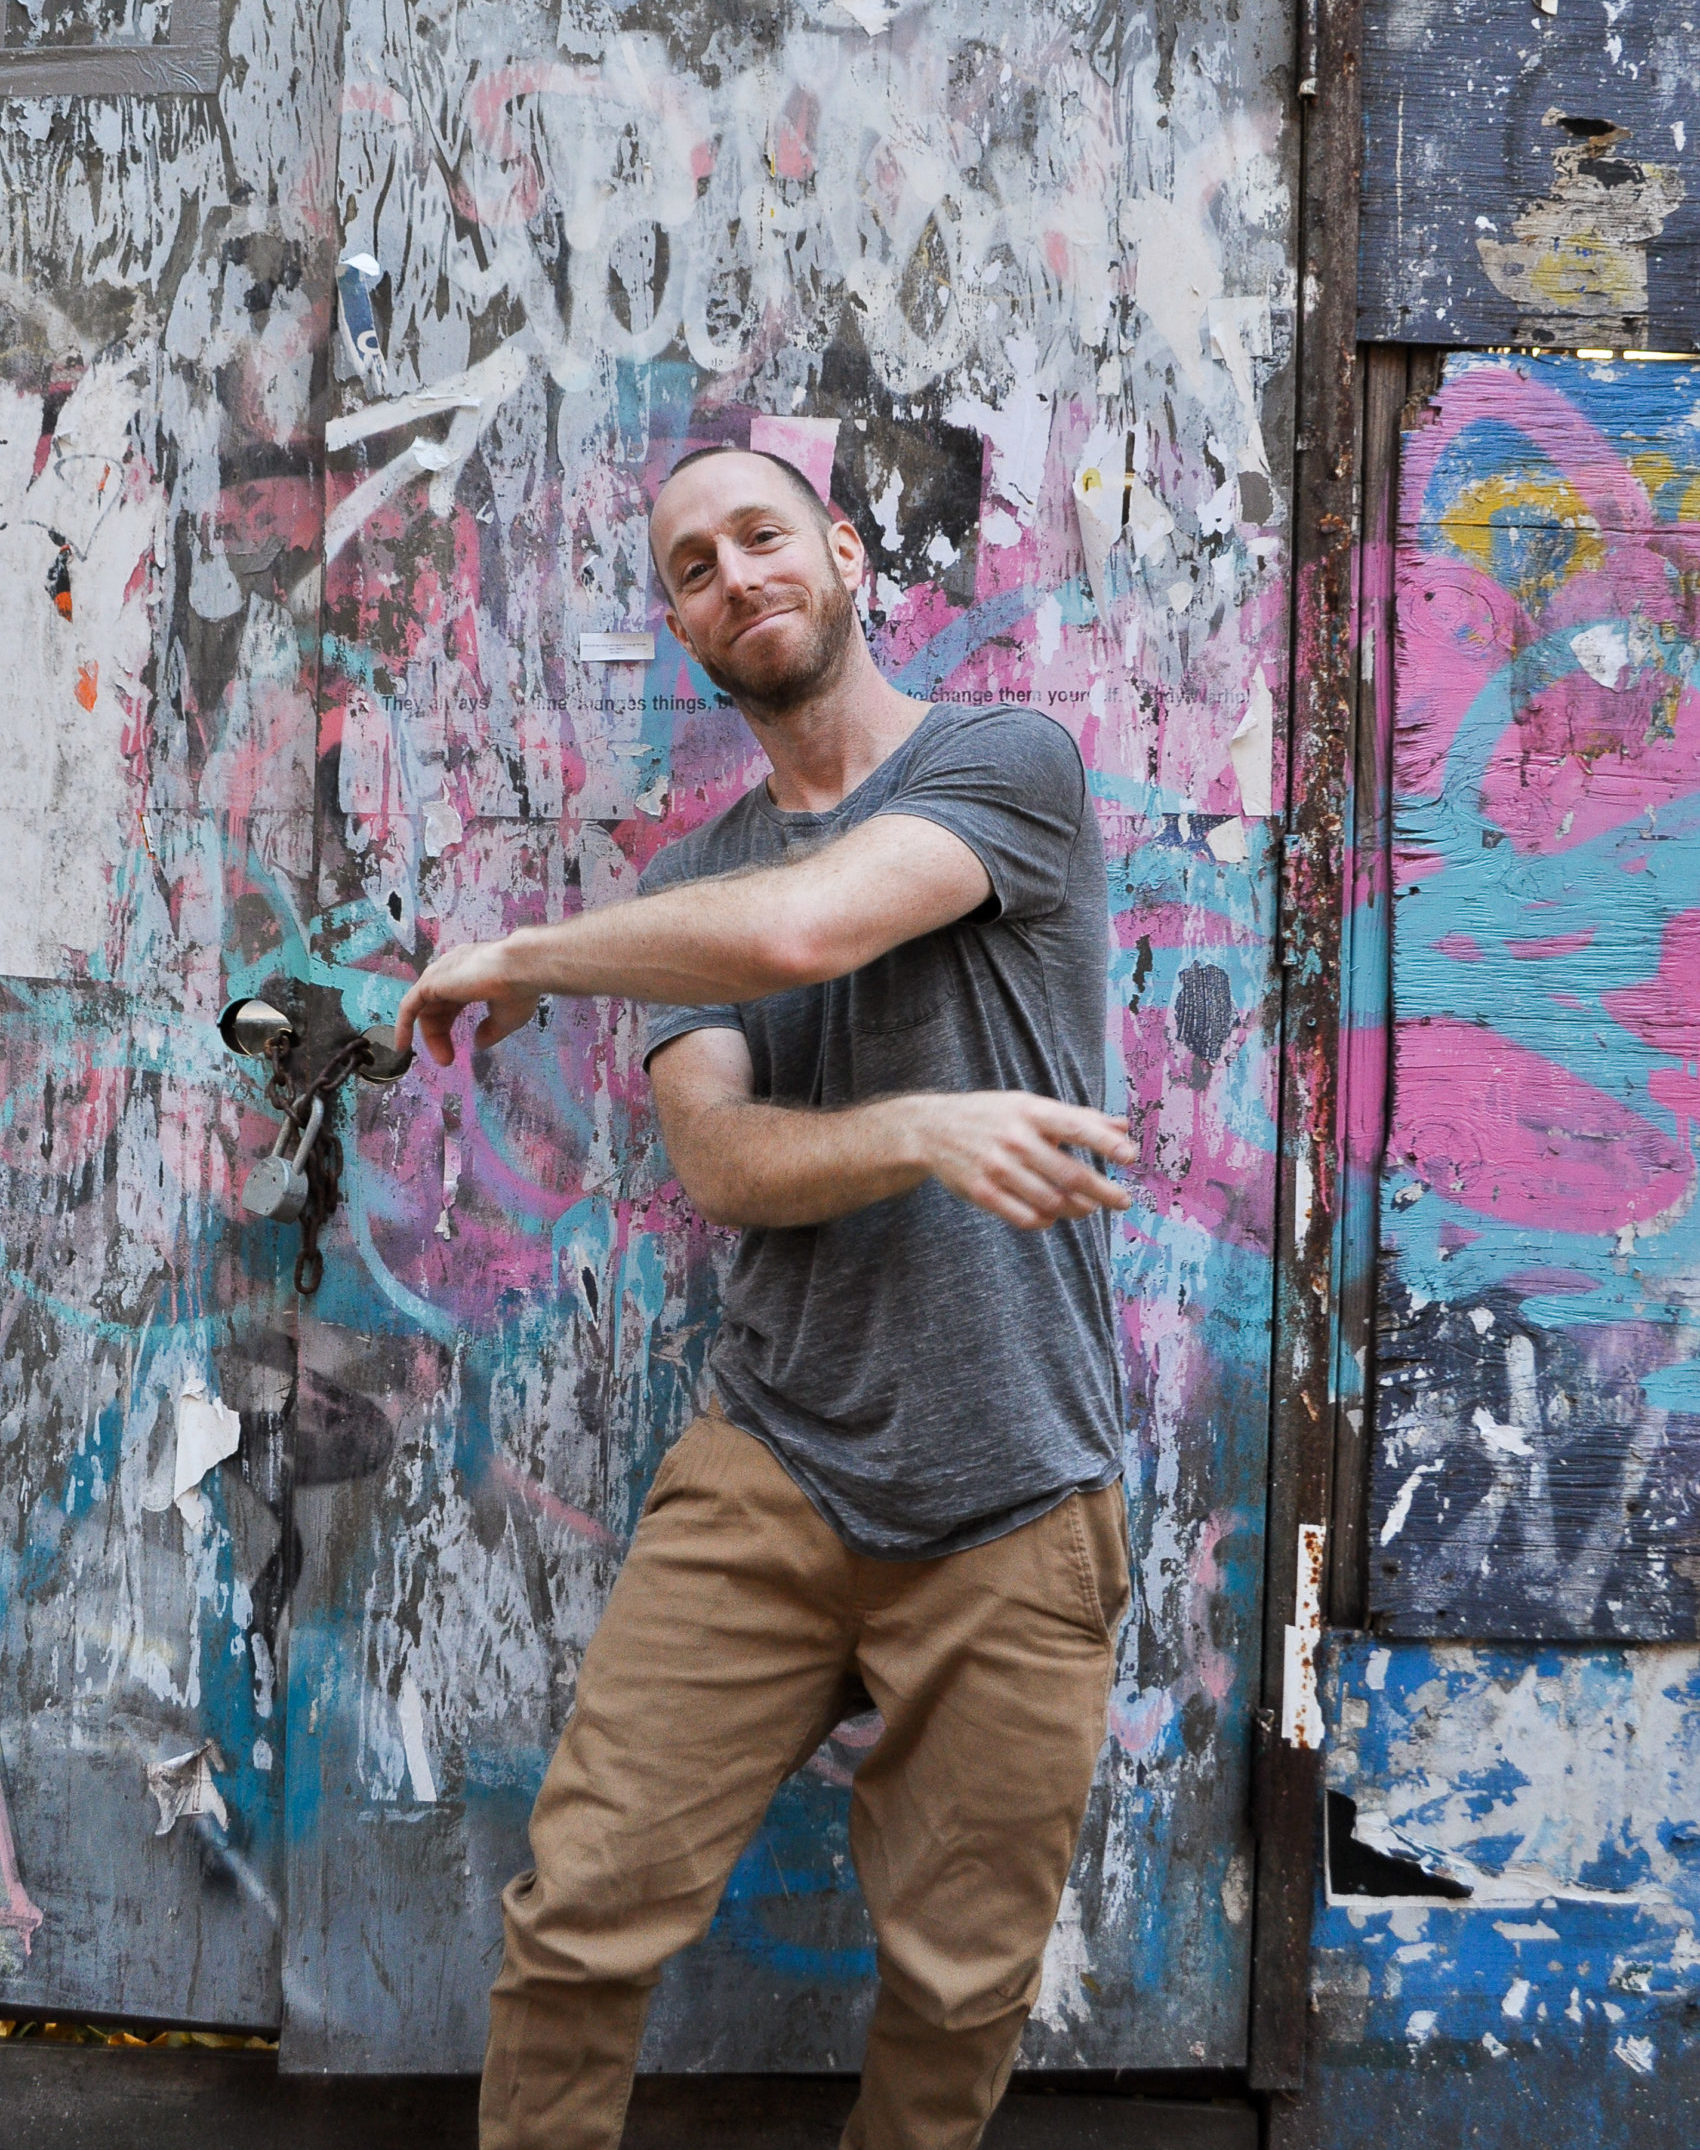 Marc Kimelman, a white man wearing a grey shirt and khaki pants, swings his arms in front of his torso, leaning slightly to the side. He is front of a colorful graffitied wall.